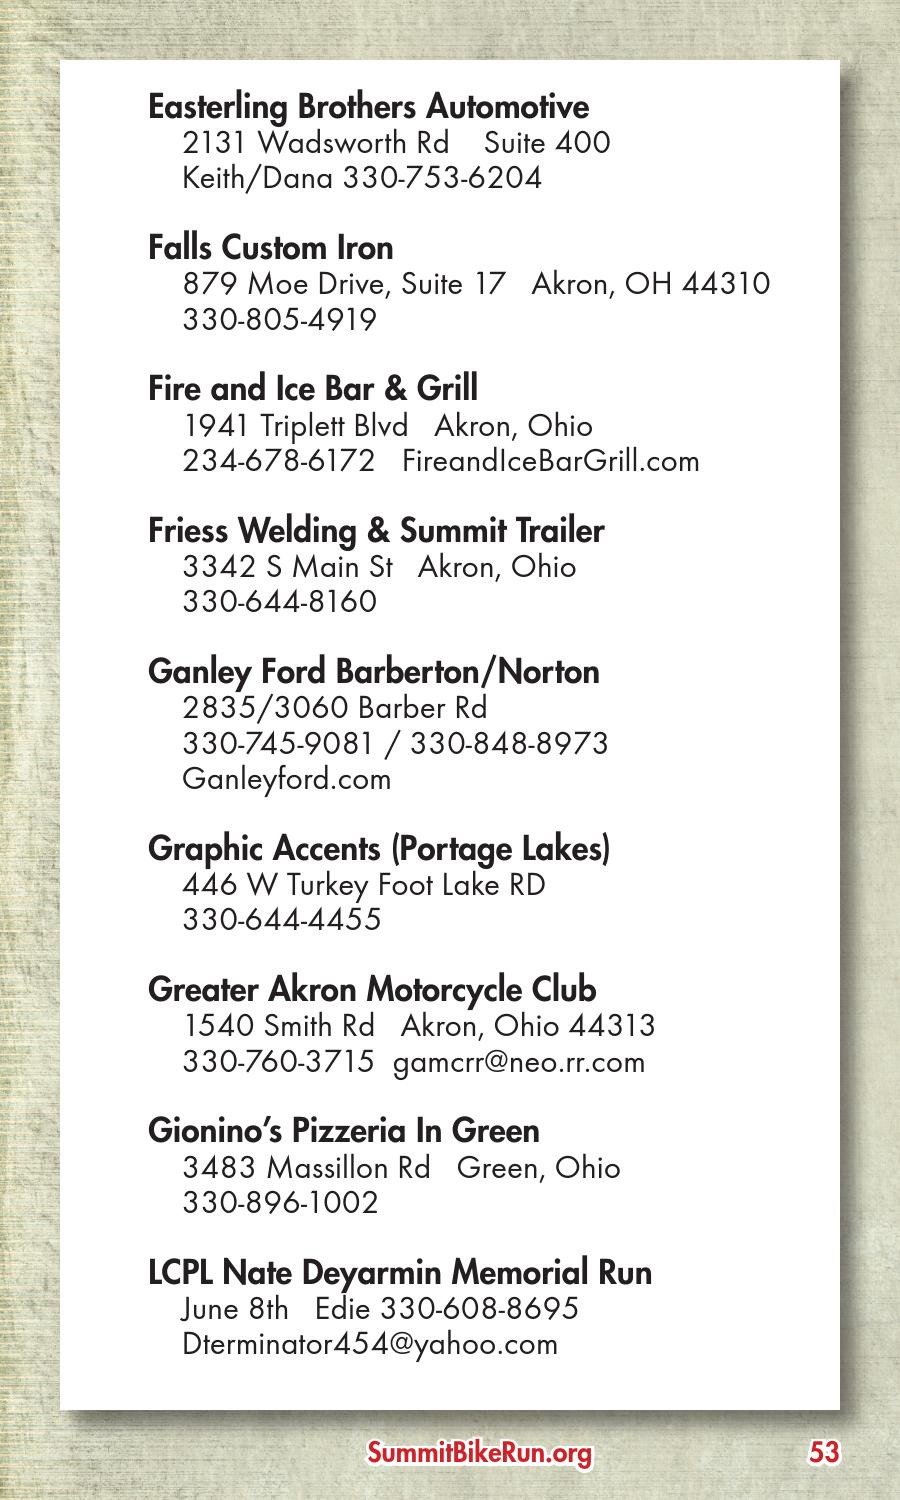 Ganley Ford Barberton >> 2015 Greater Akron Area Motorcycle Events Calendar by ...